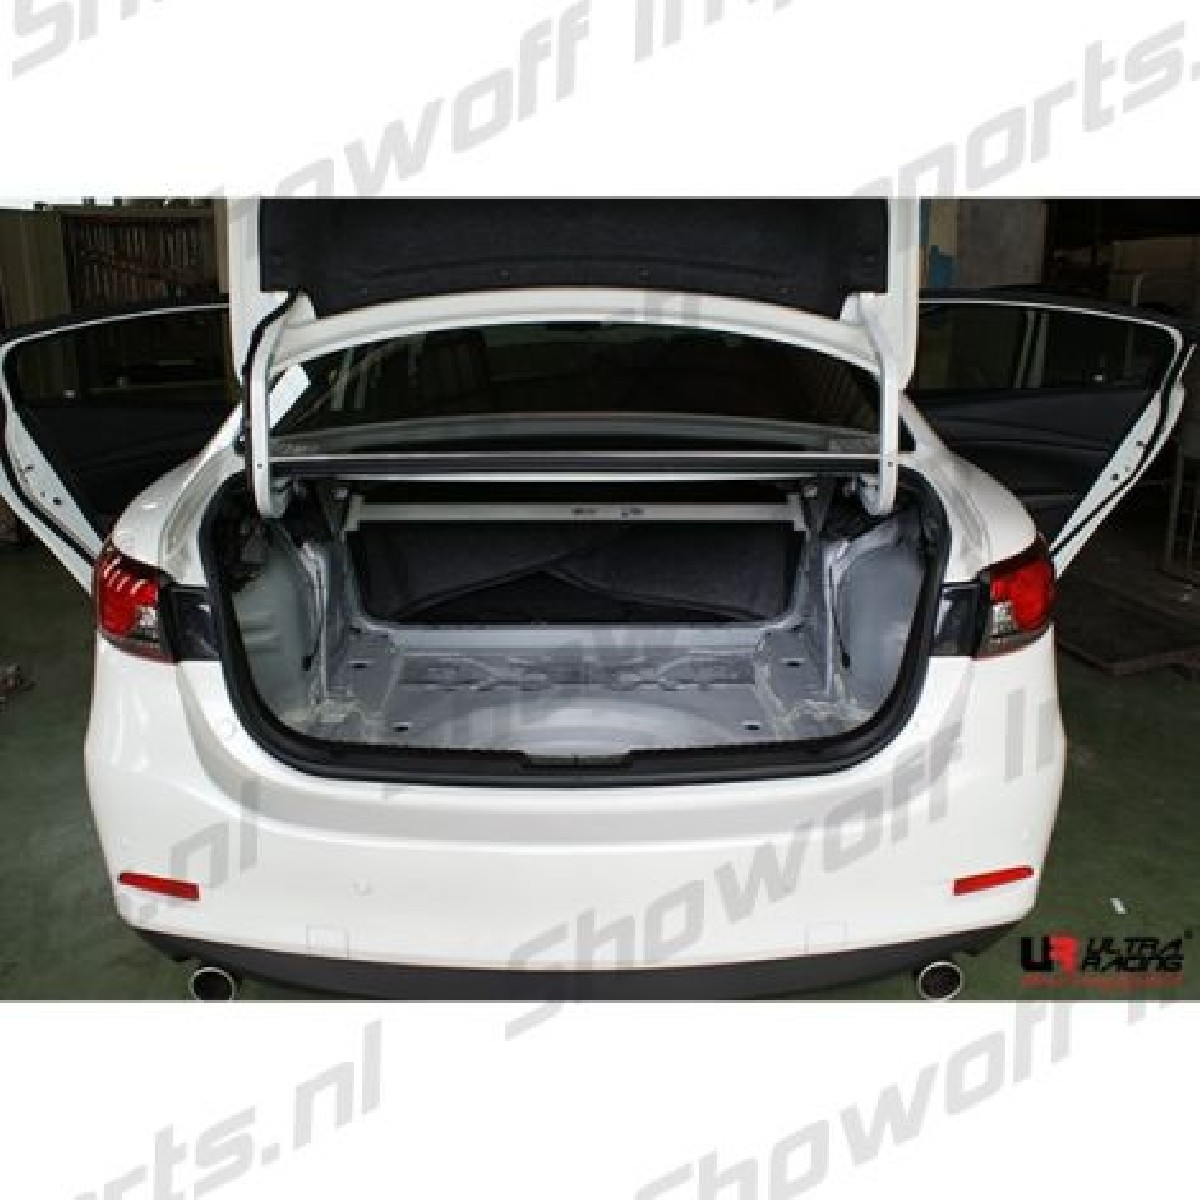 Mazda 3 13+ UltraRacing 2P Rear Upper StrutBar